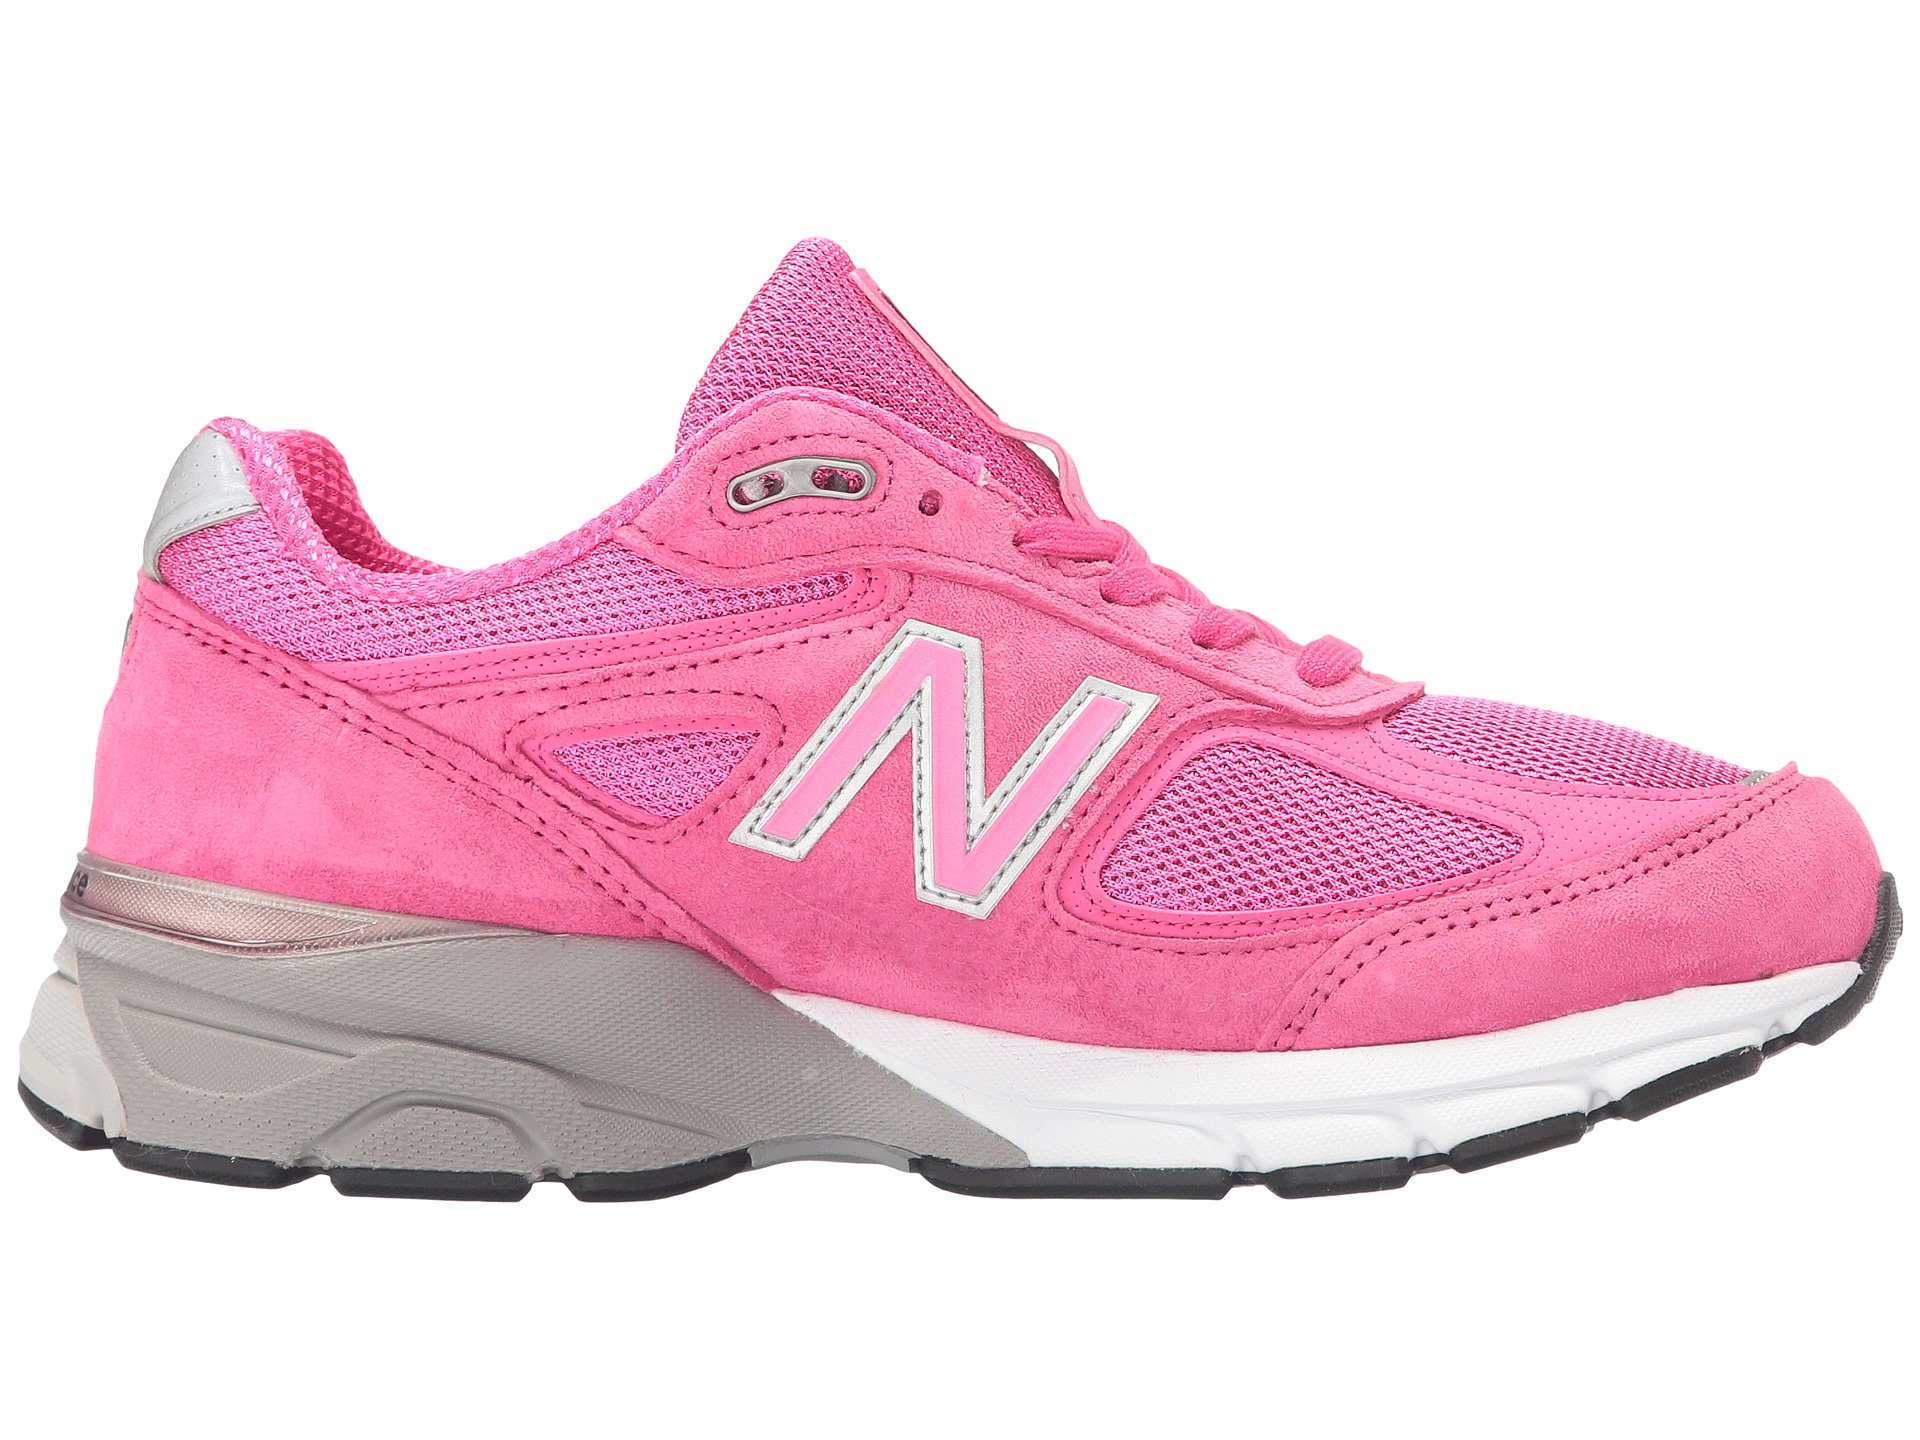 new balance 990 arch support